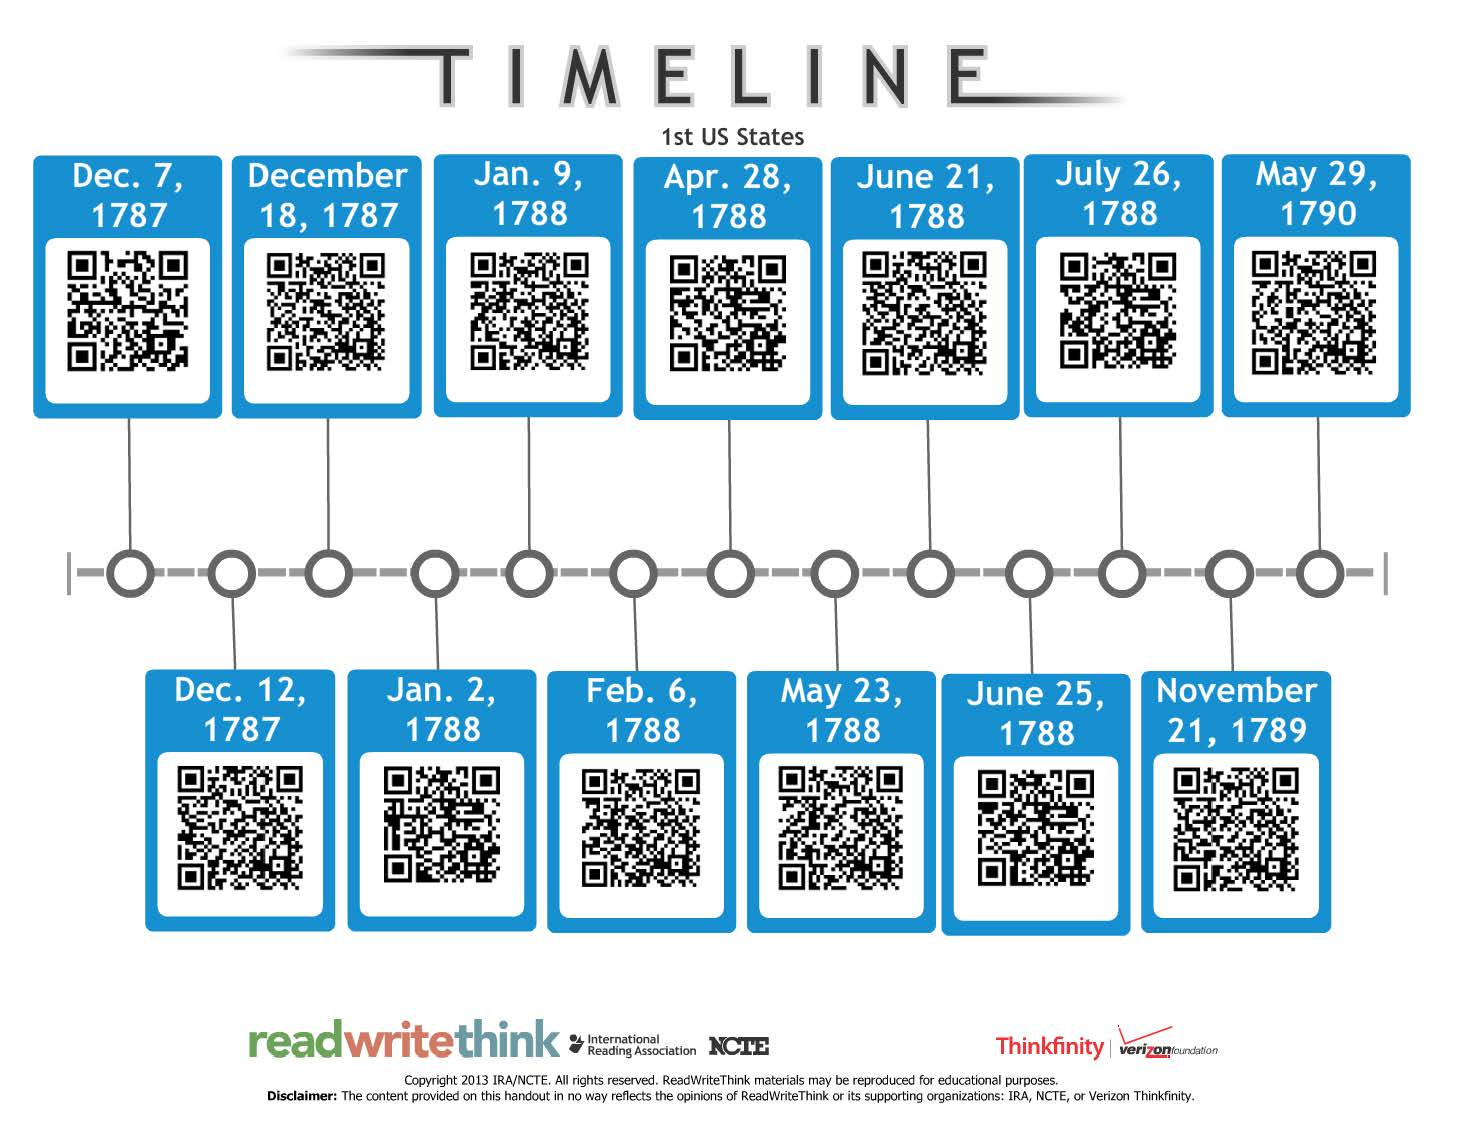 read write think timeline